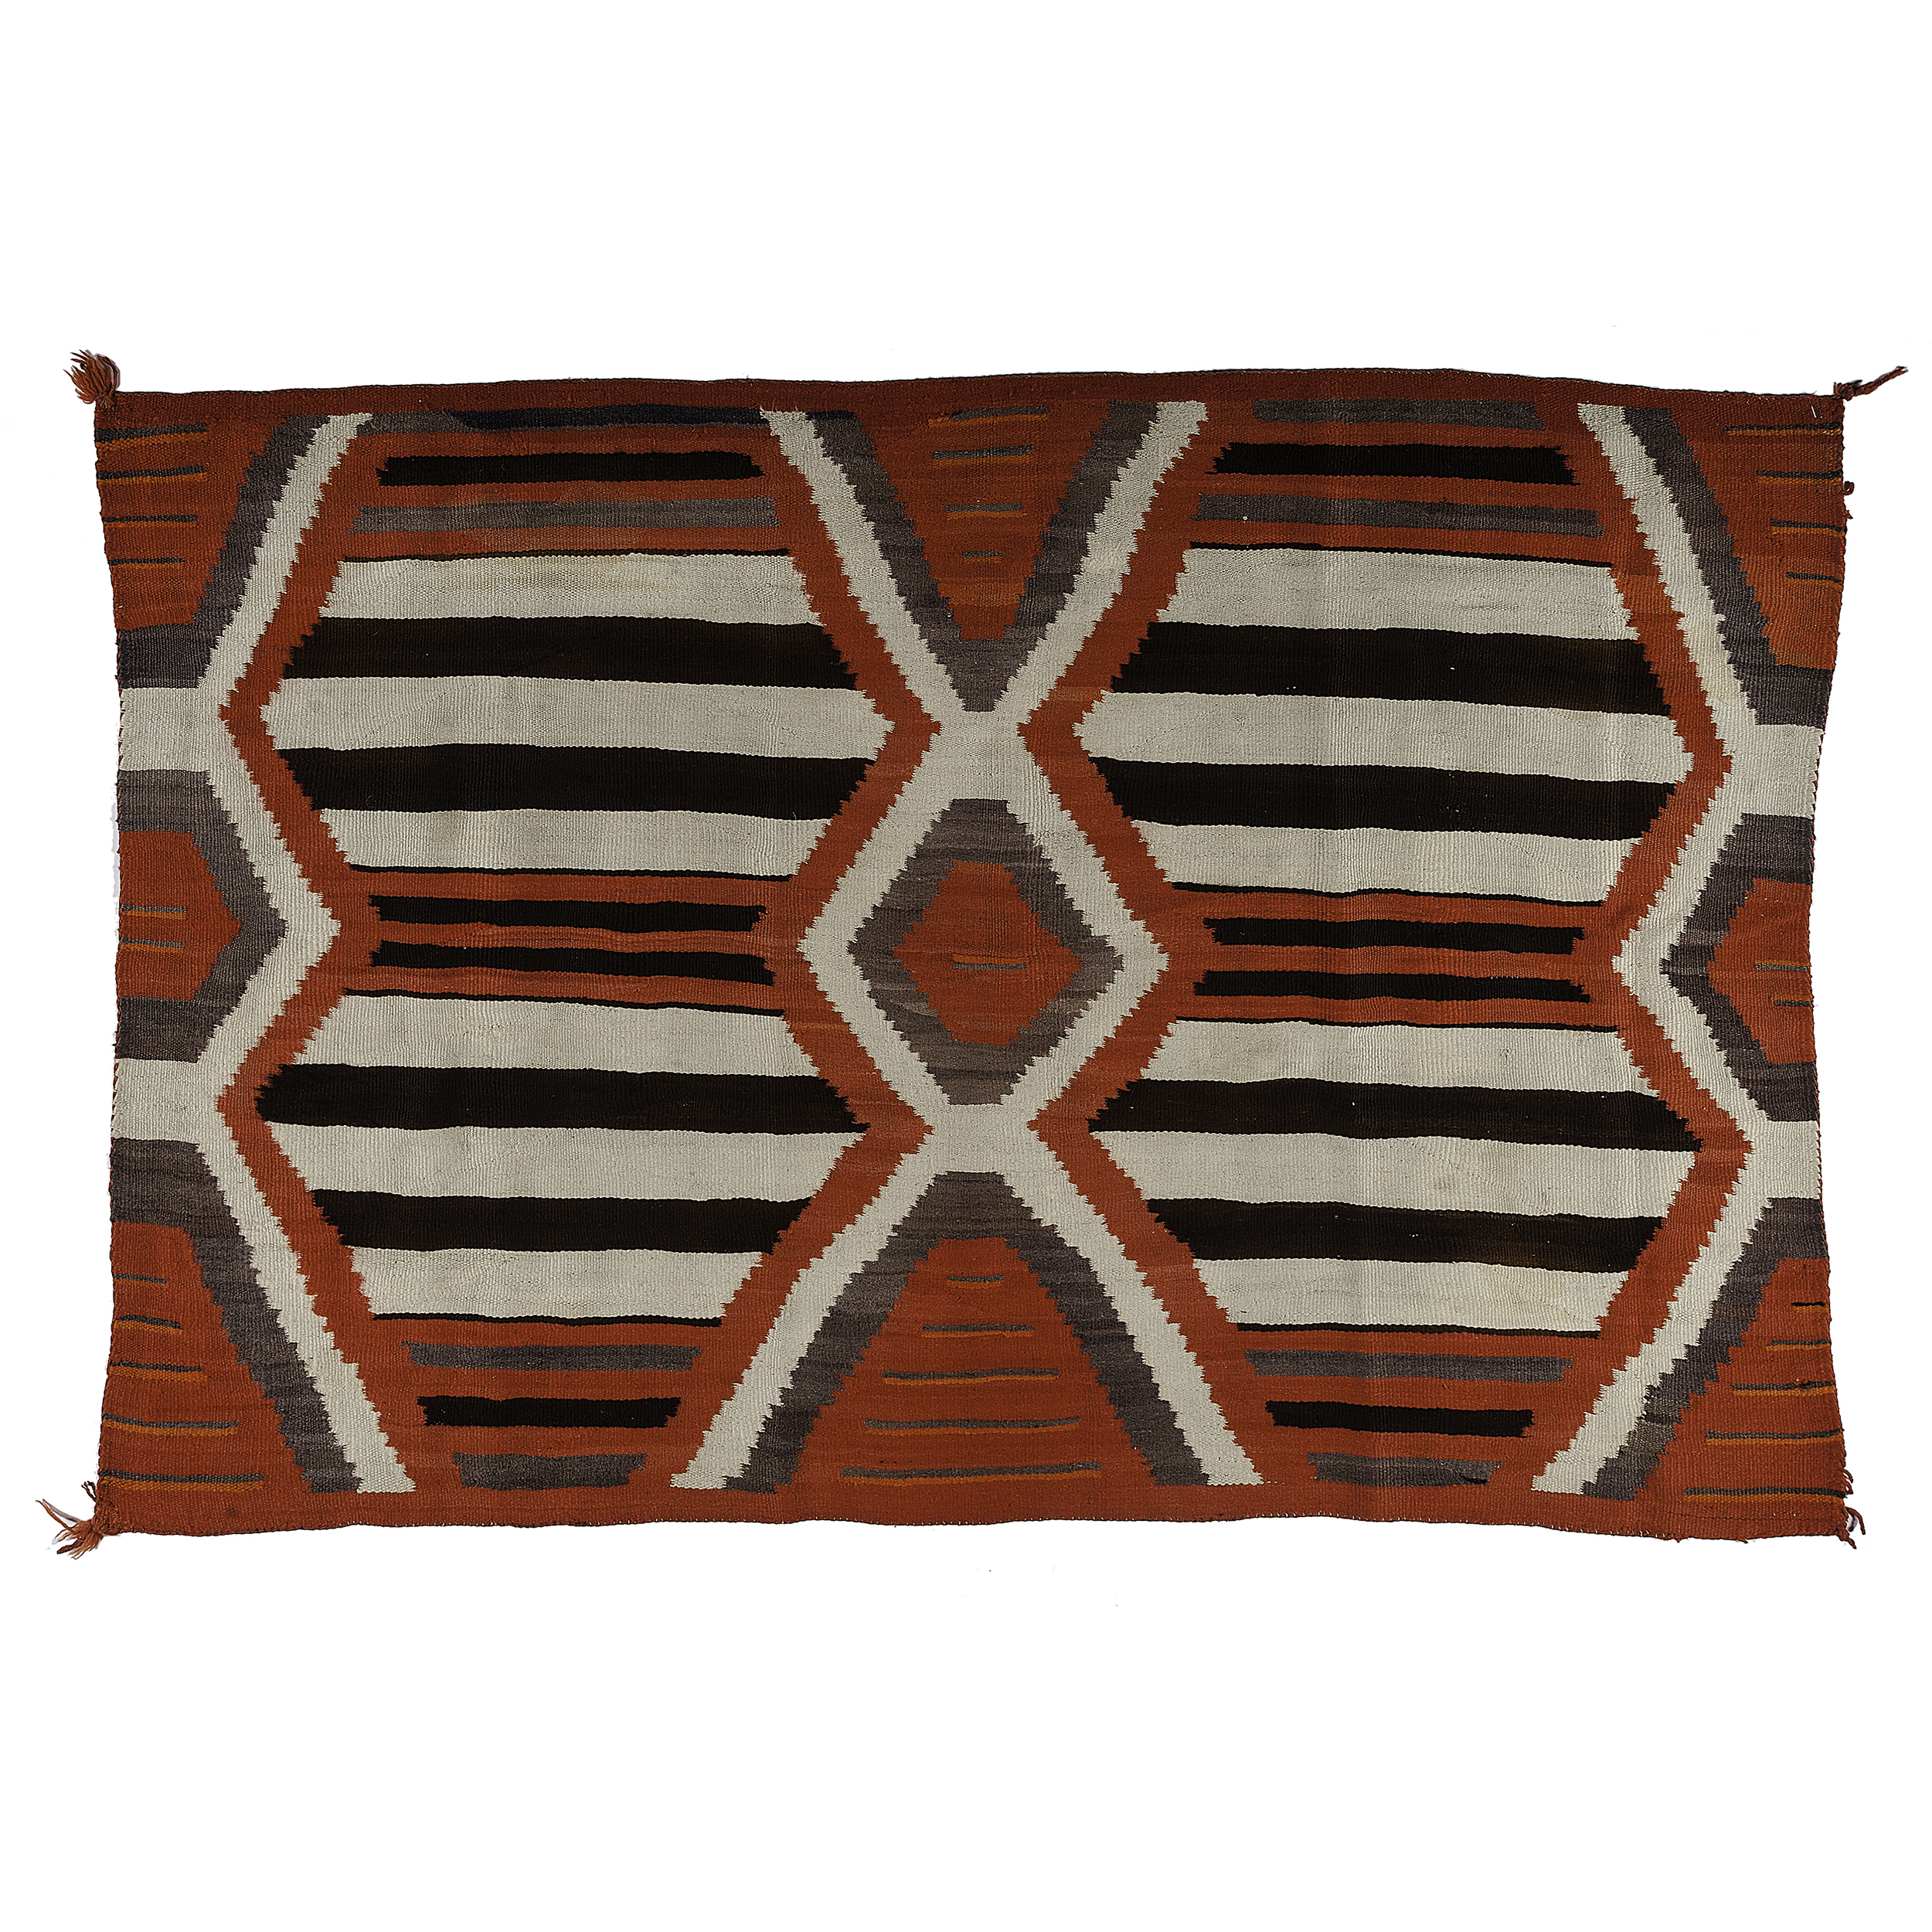 Navajo Third Phase Chief S Blanket From The Collection Of